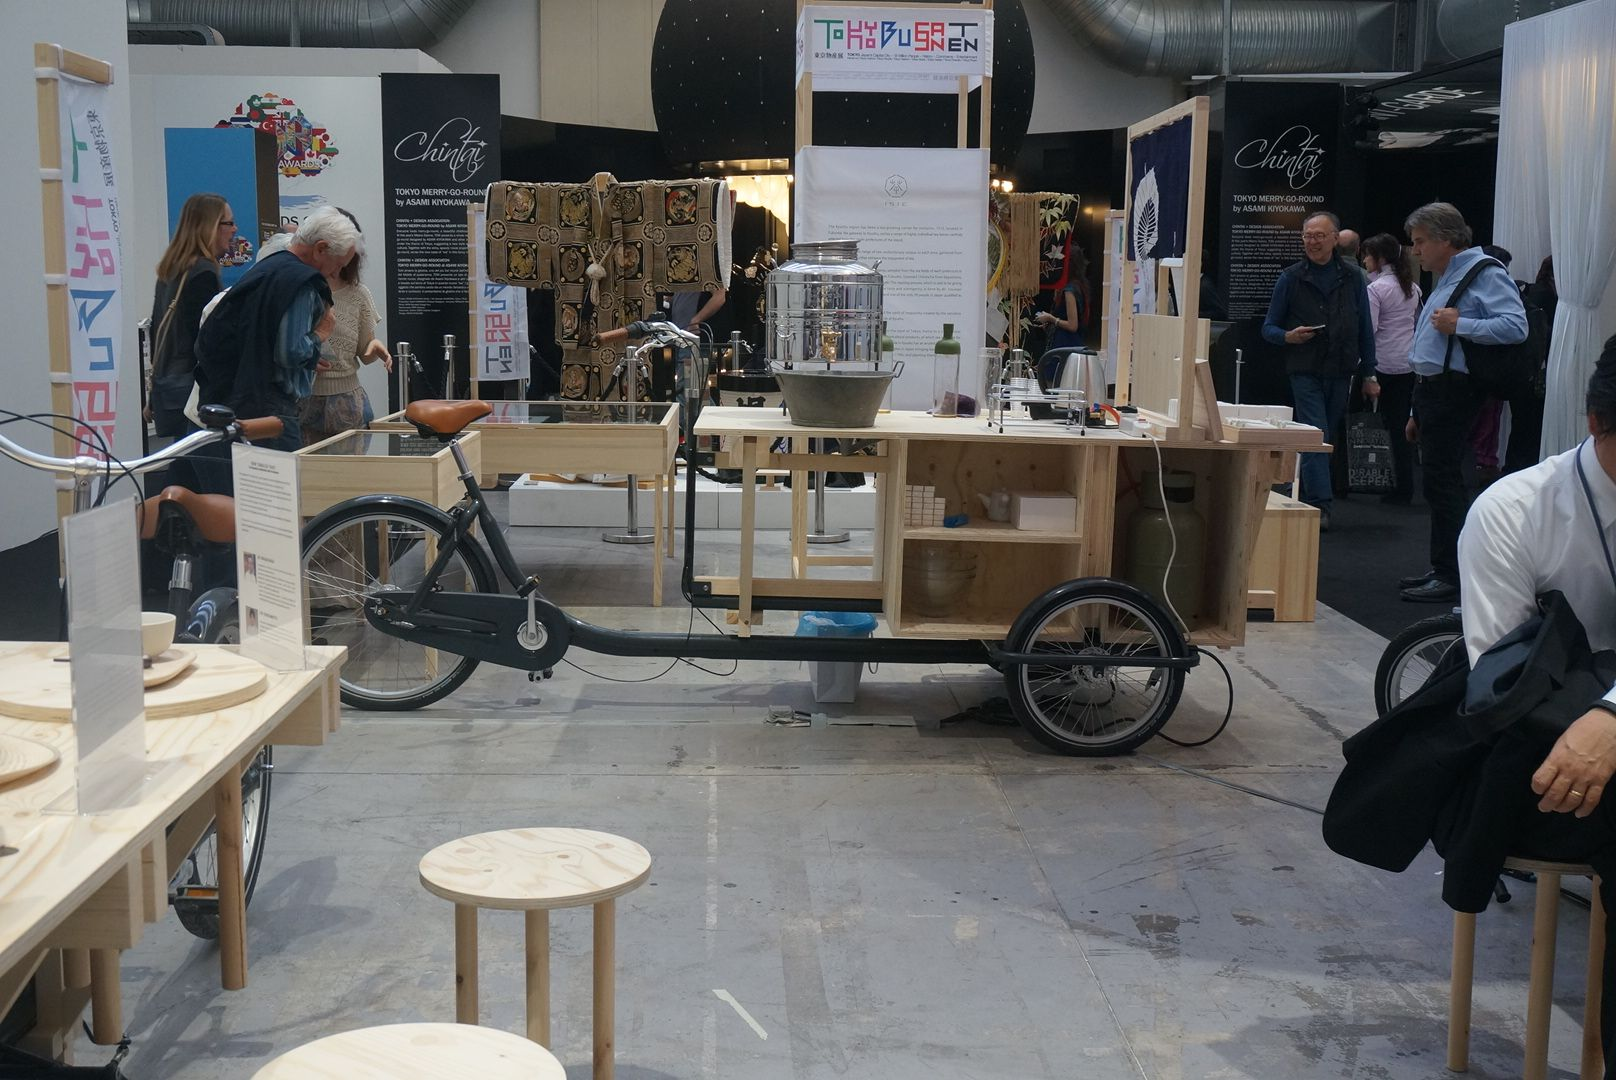 Babboe meets Tokyo Design at Salone del Mobile in Milan